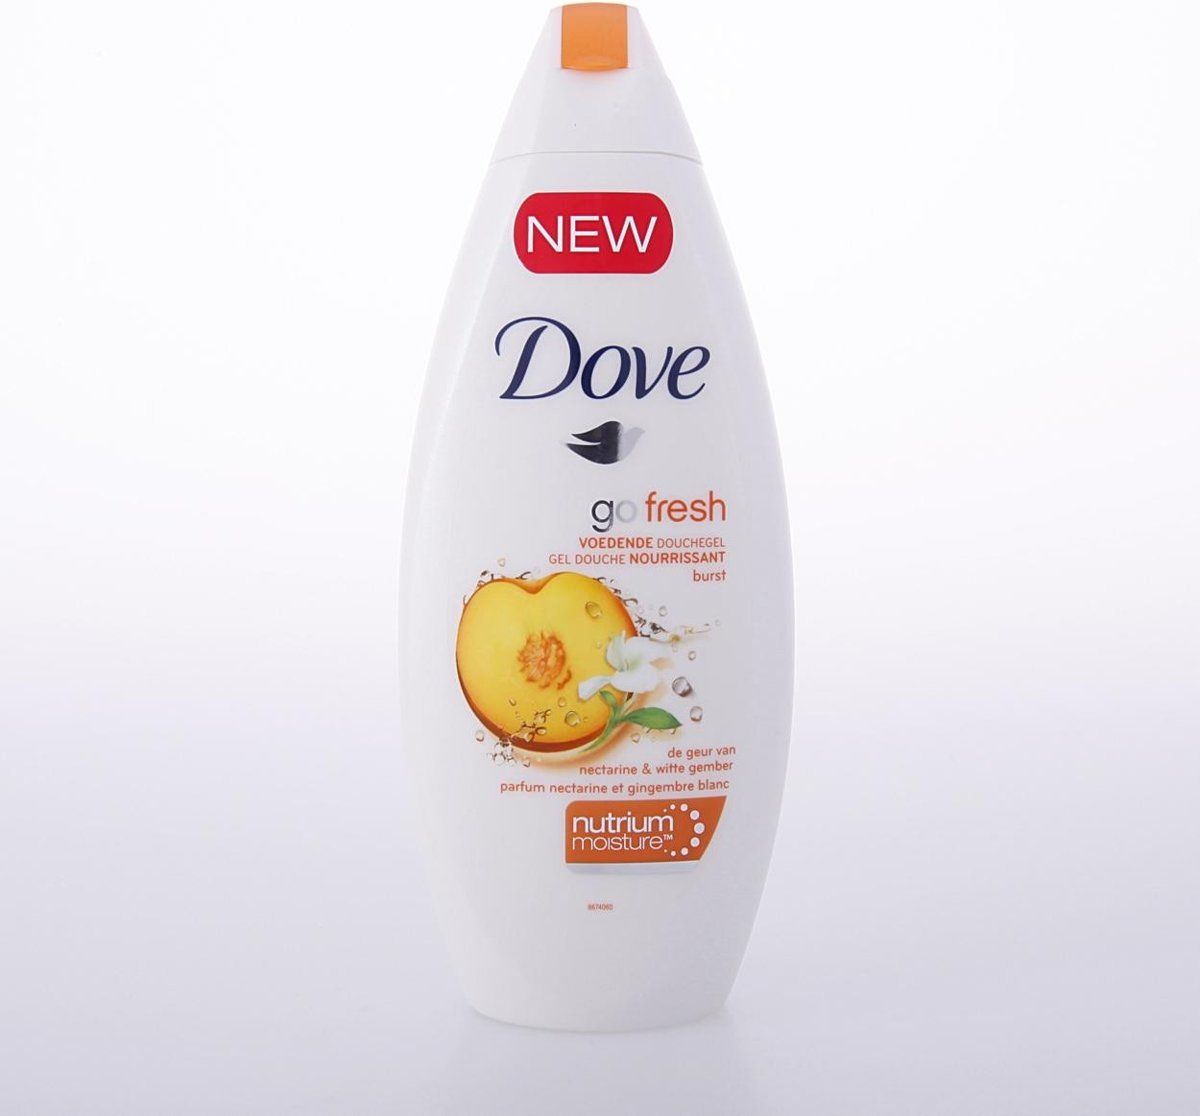 Dove Go Fresh Burst Voedende - Douchegel